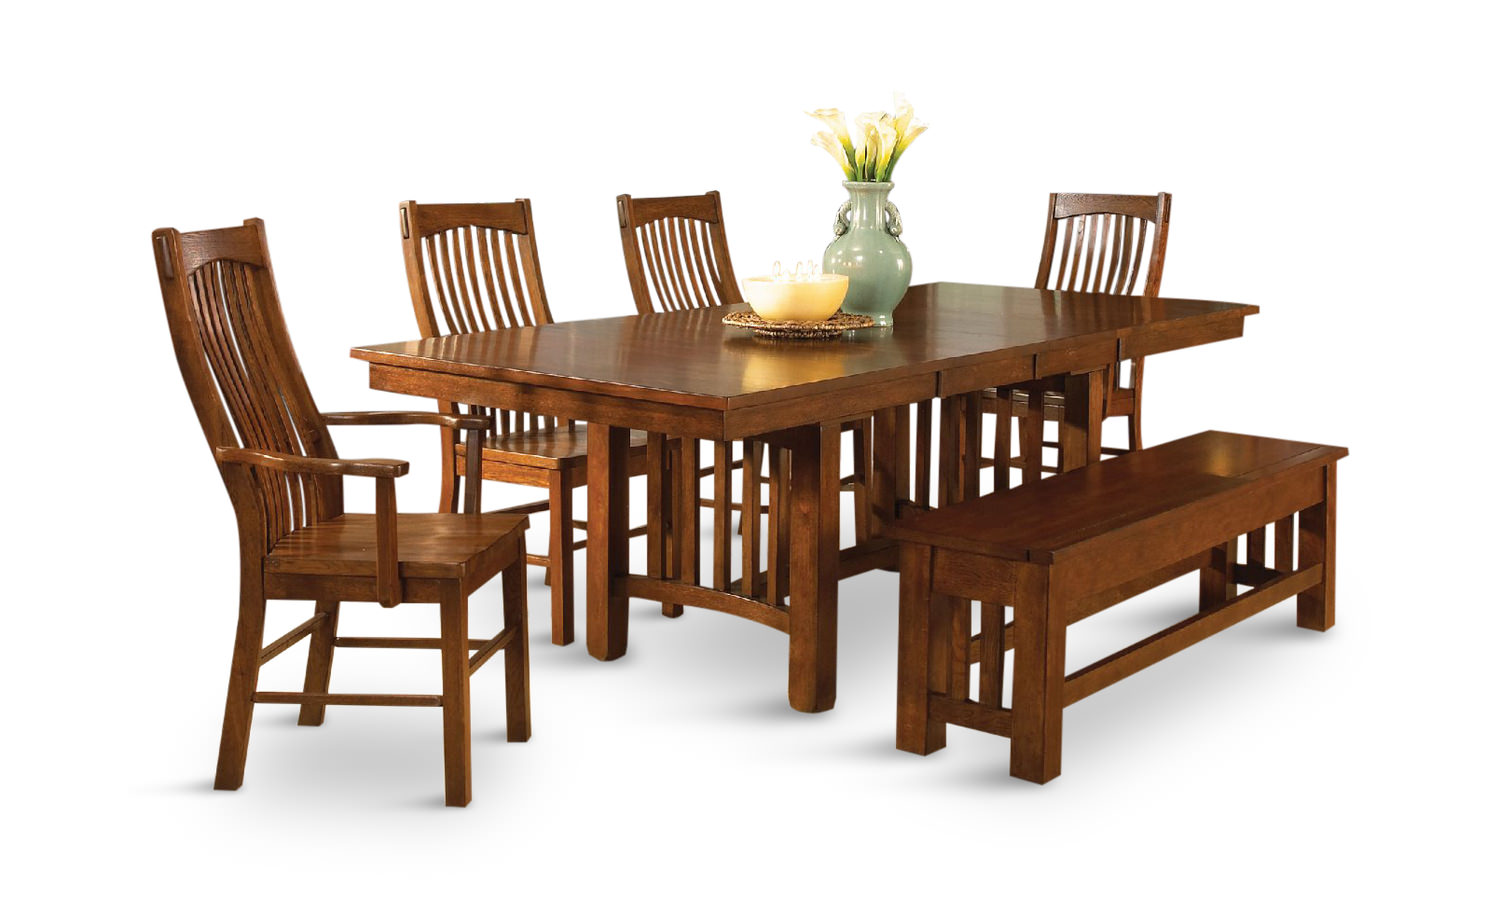 Laurelhurst Solid Oak Mission dining table and